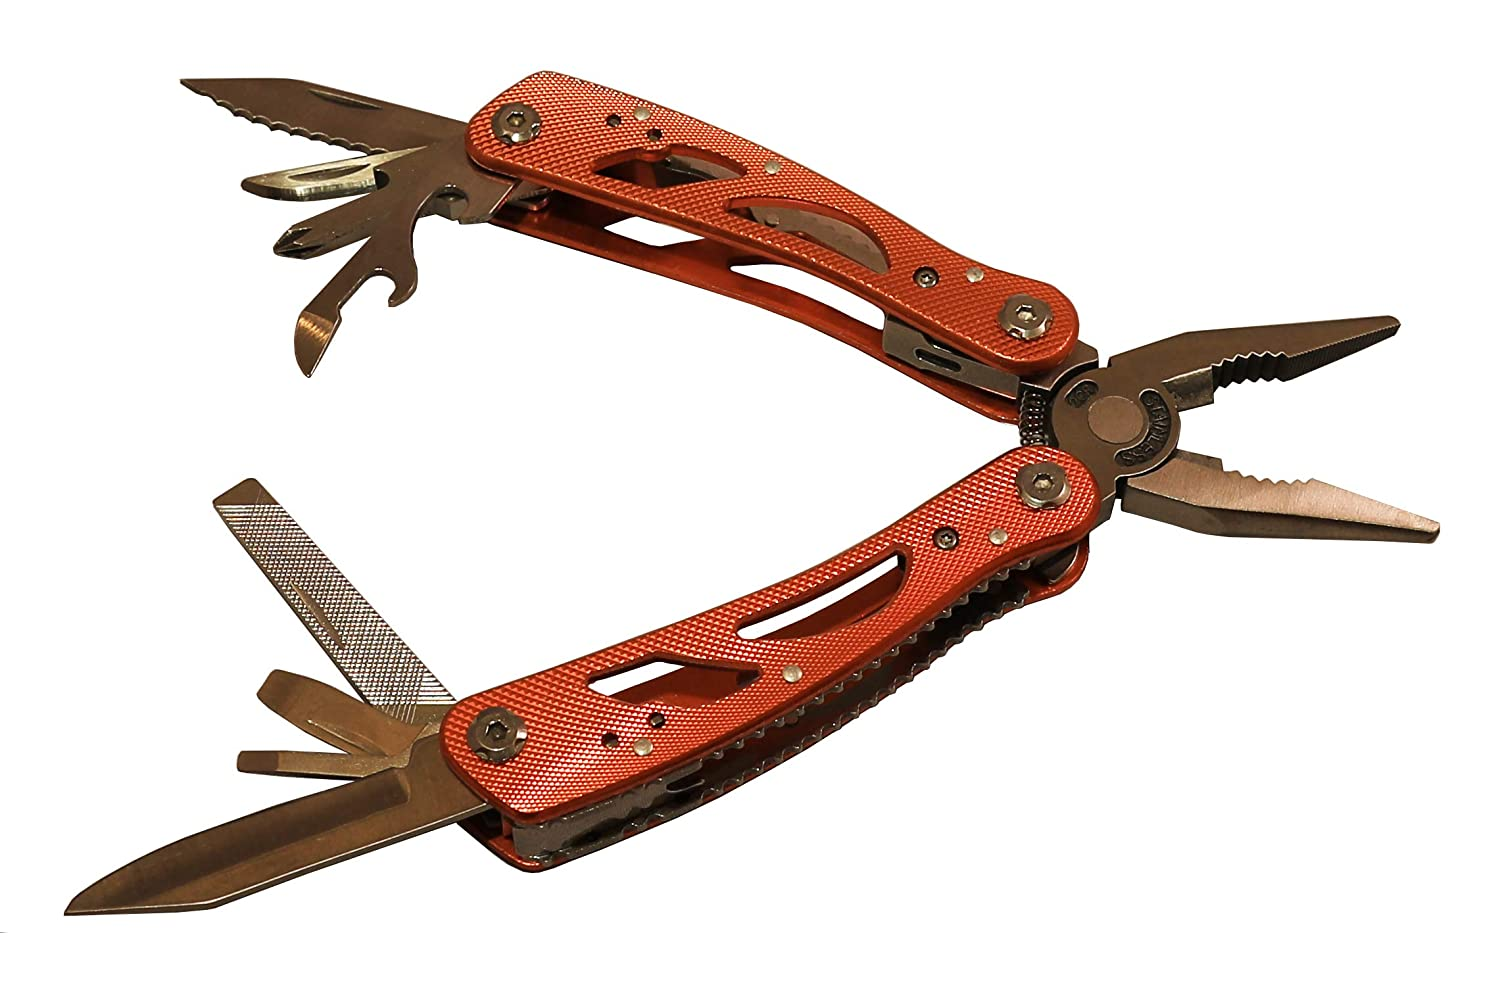 Multitool, heavy duty stainless steel with pliers, 15-in-1 tools and sheath